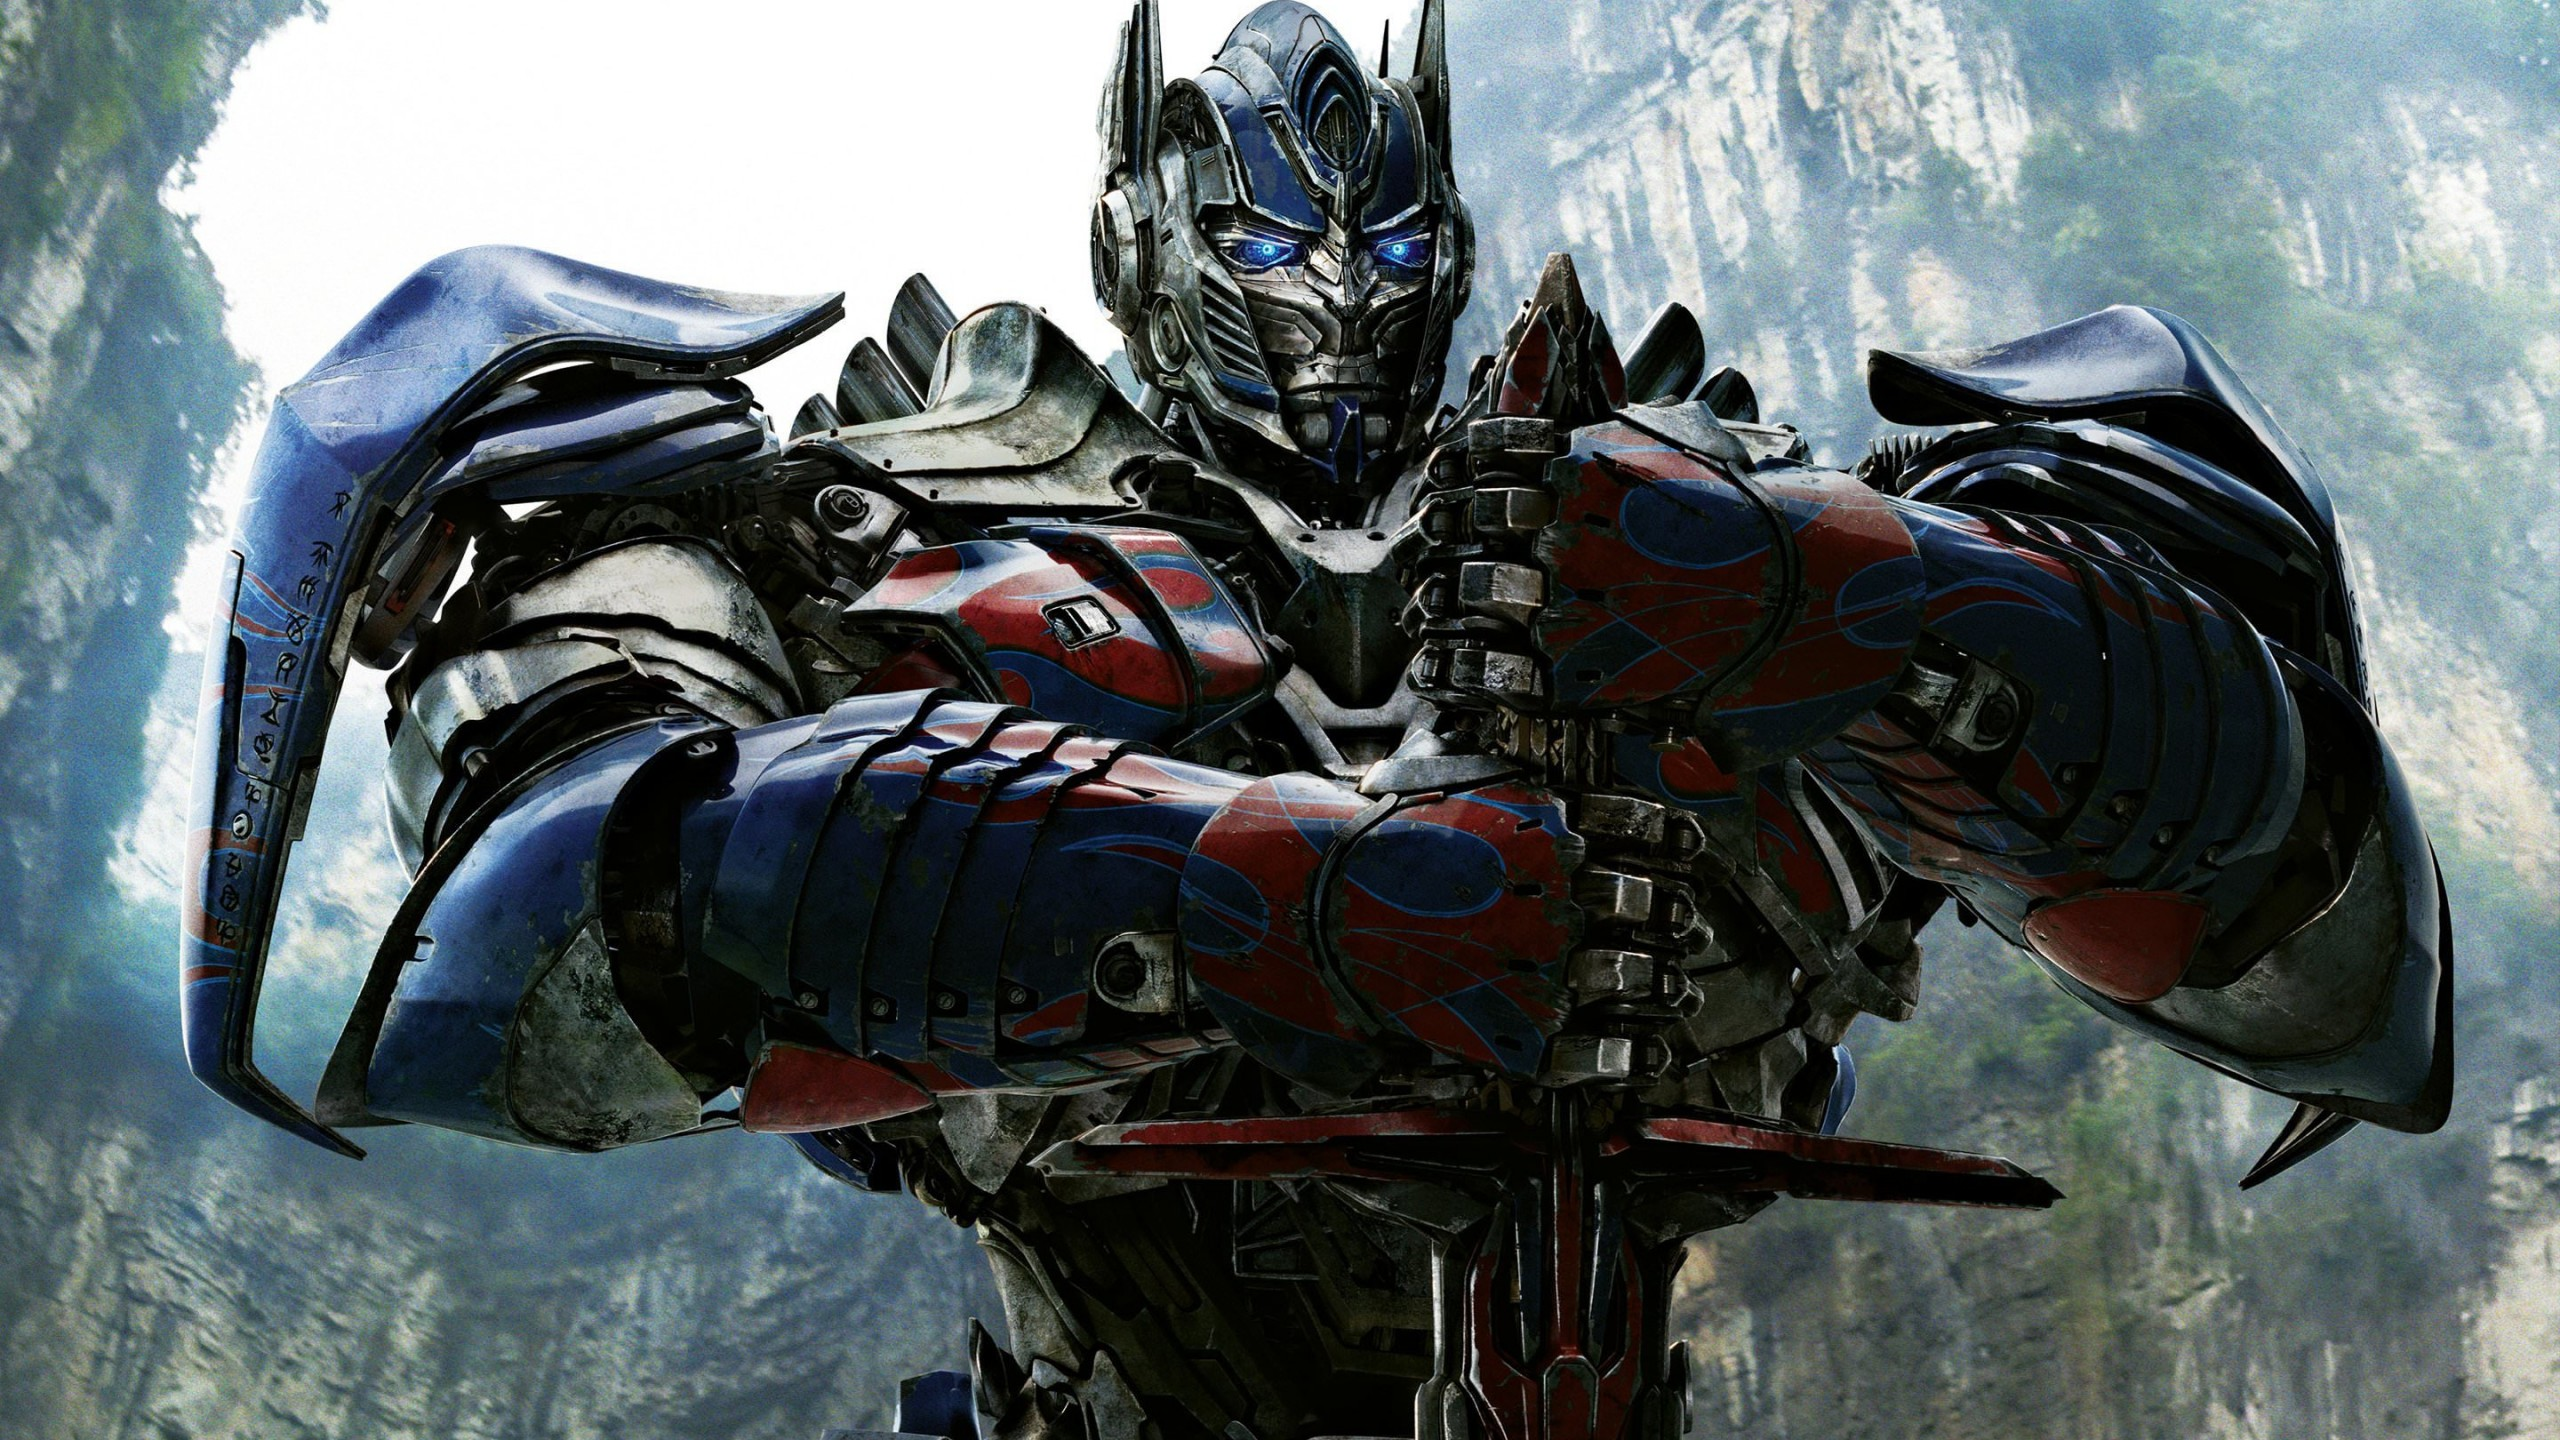 Optimus Prime - Transformers Wallpaper for Desktop 2560x1440